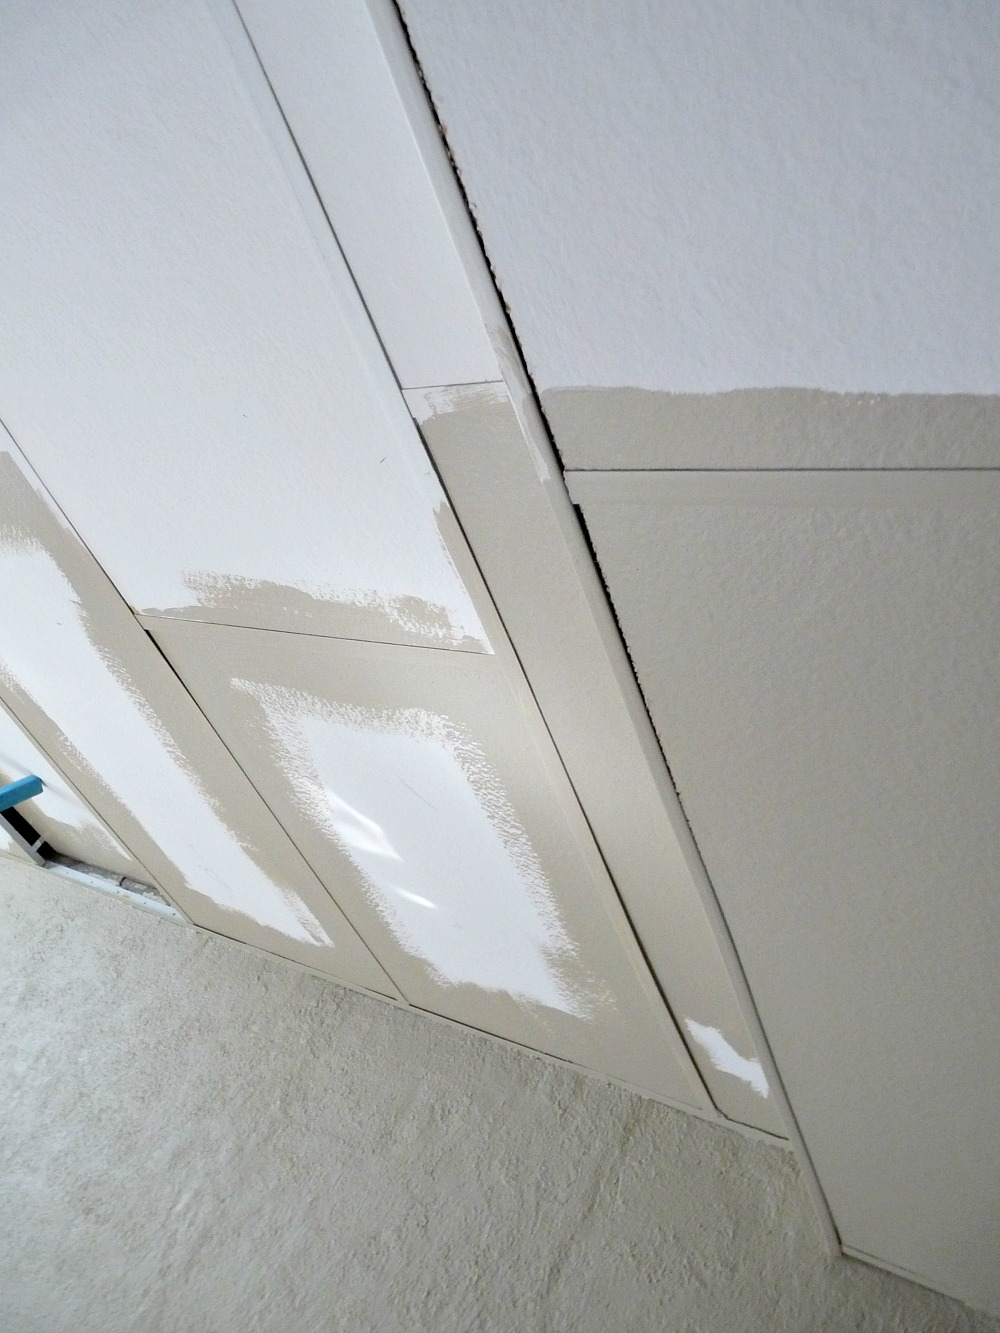 Cannot remove ceiling tiles? Here's how to paint them